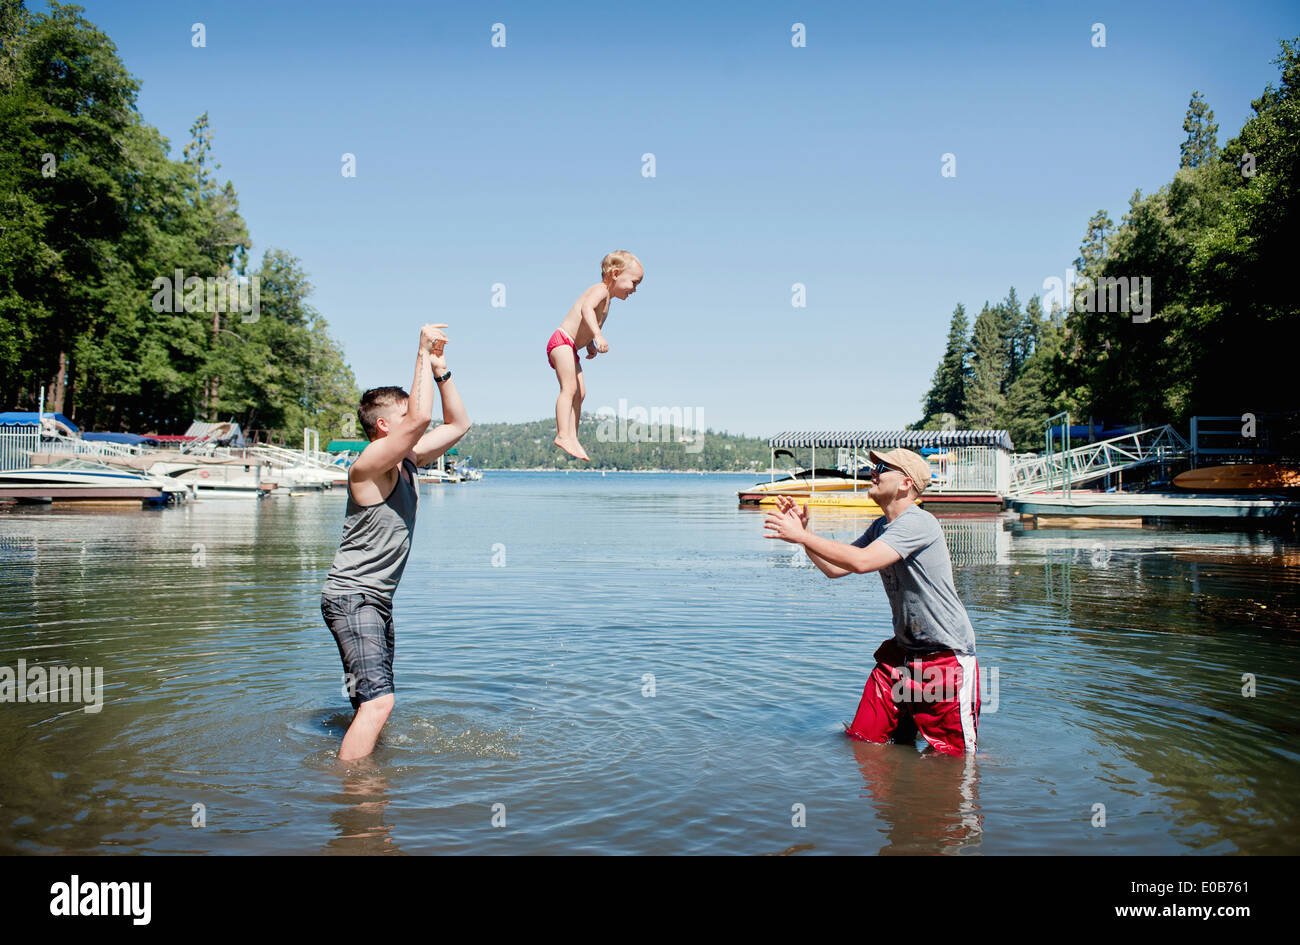 Female toddler thrown and caught mid air by young men - Stock Image